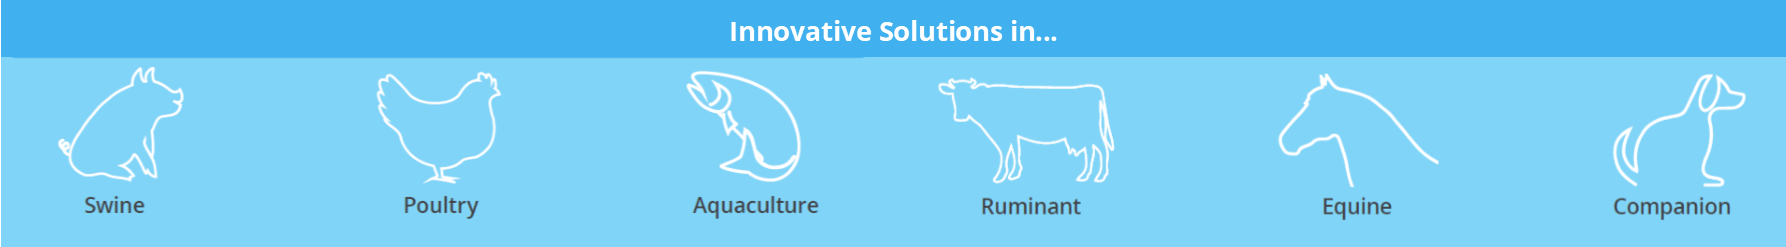 Animal Health Innovation, Innovative Solutions in...